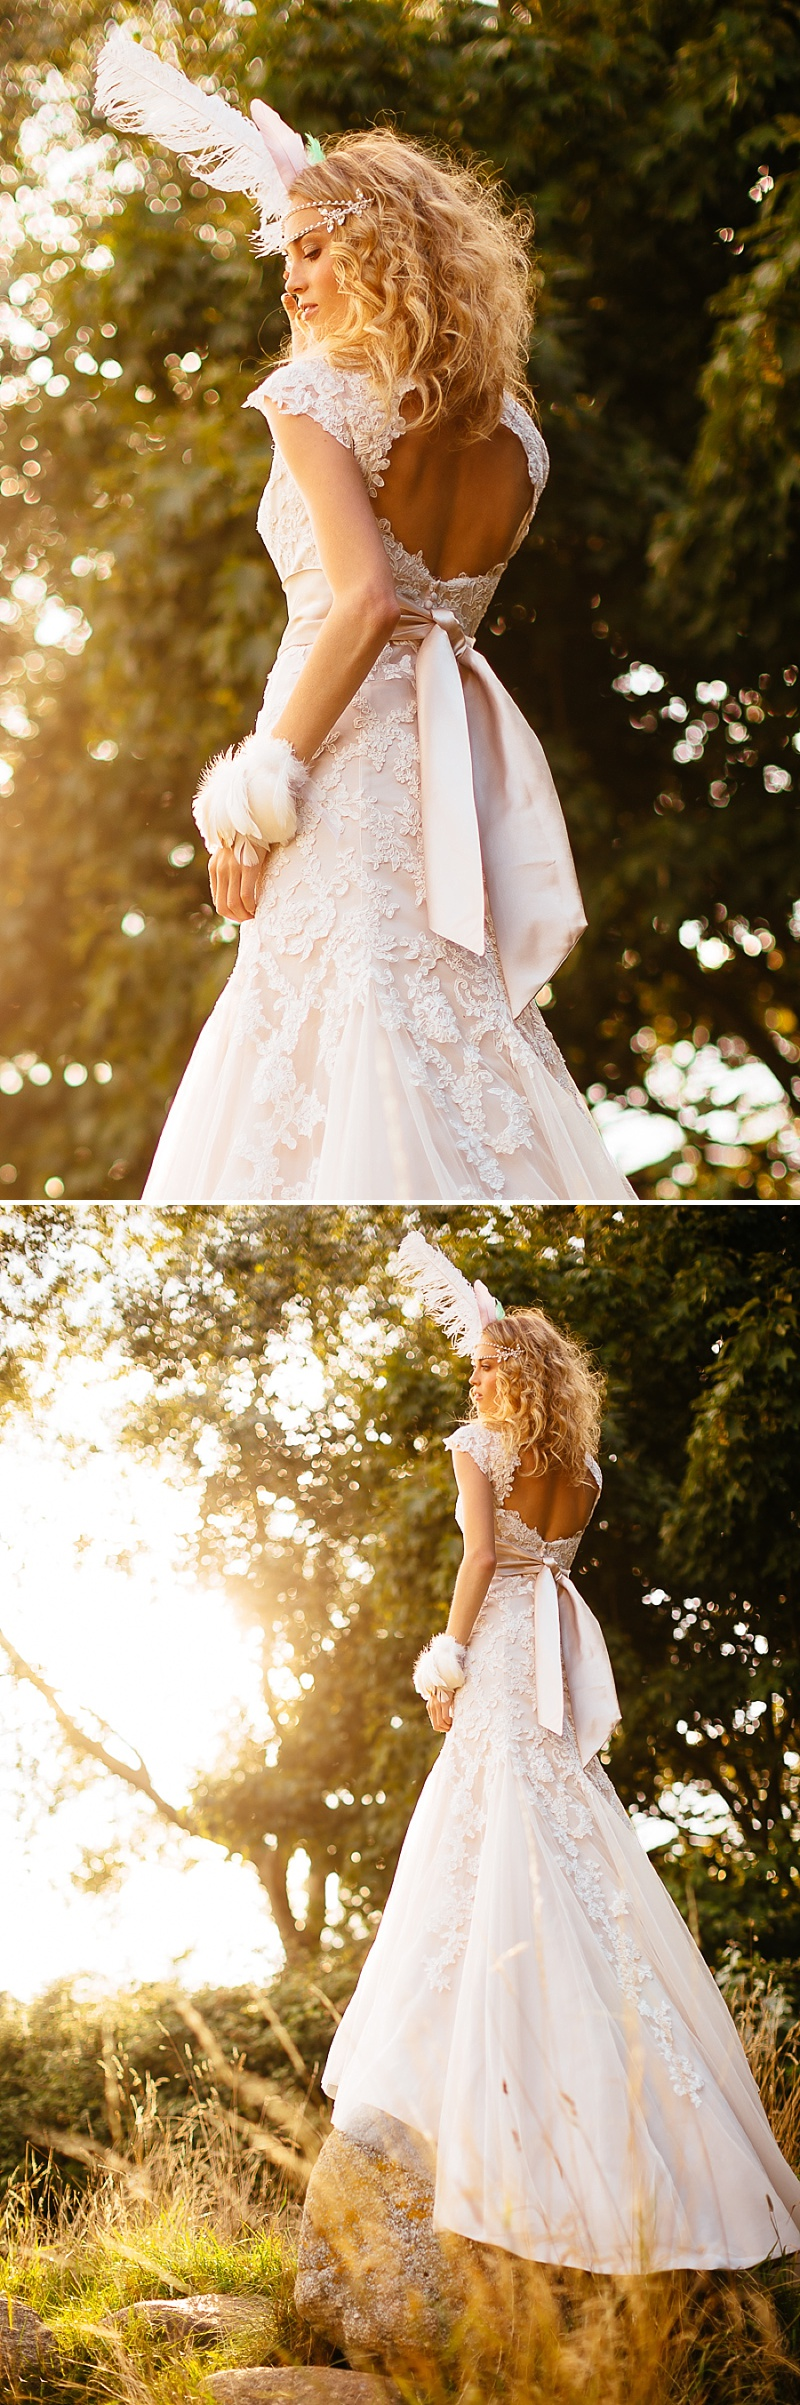 A Boho Earth-Child Themed Bridal Inspiration Shoot, Gowns by Diane Harbridge, Images from Phil Drinkwater_0003